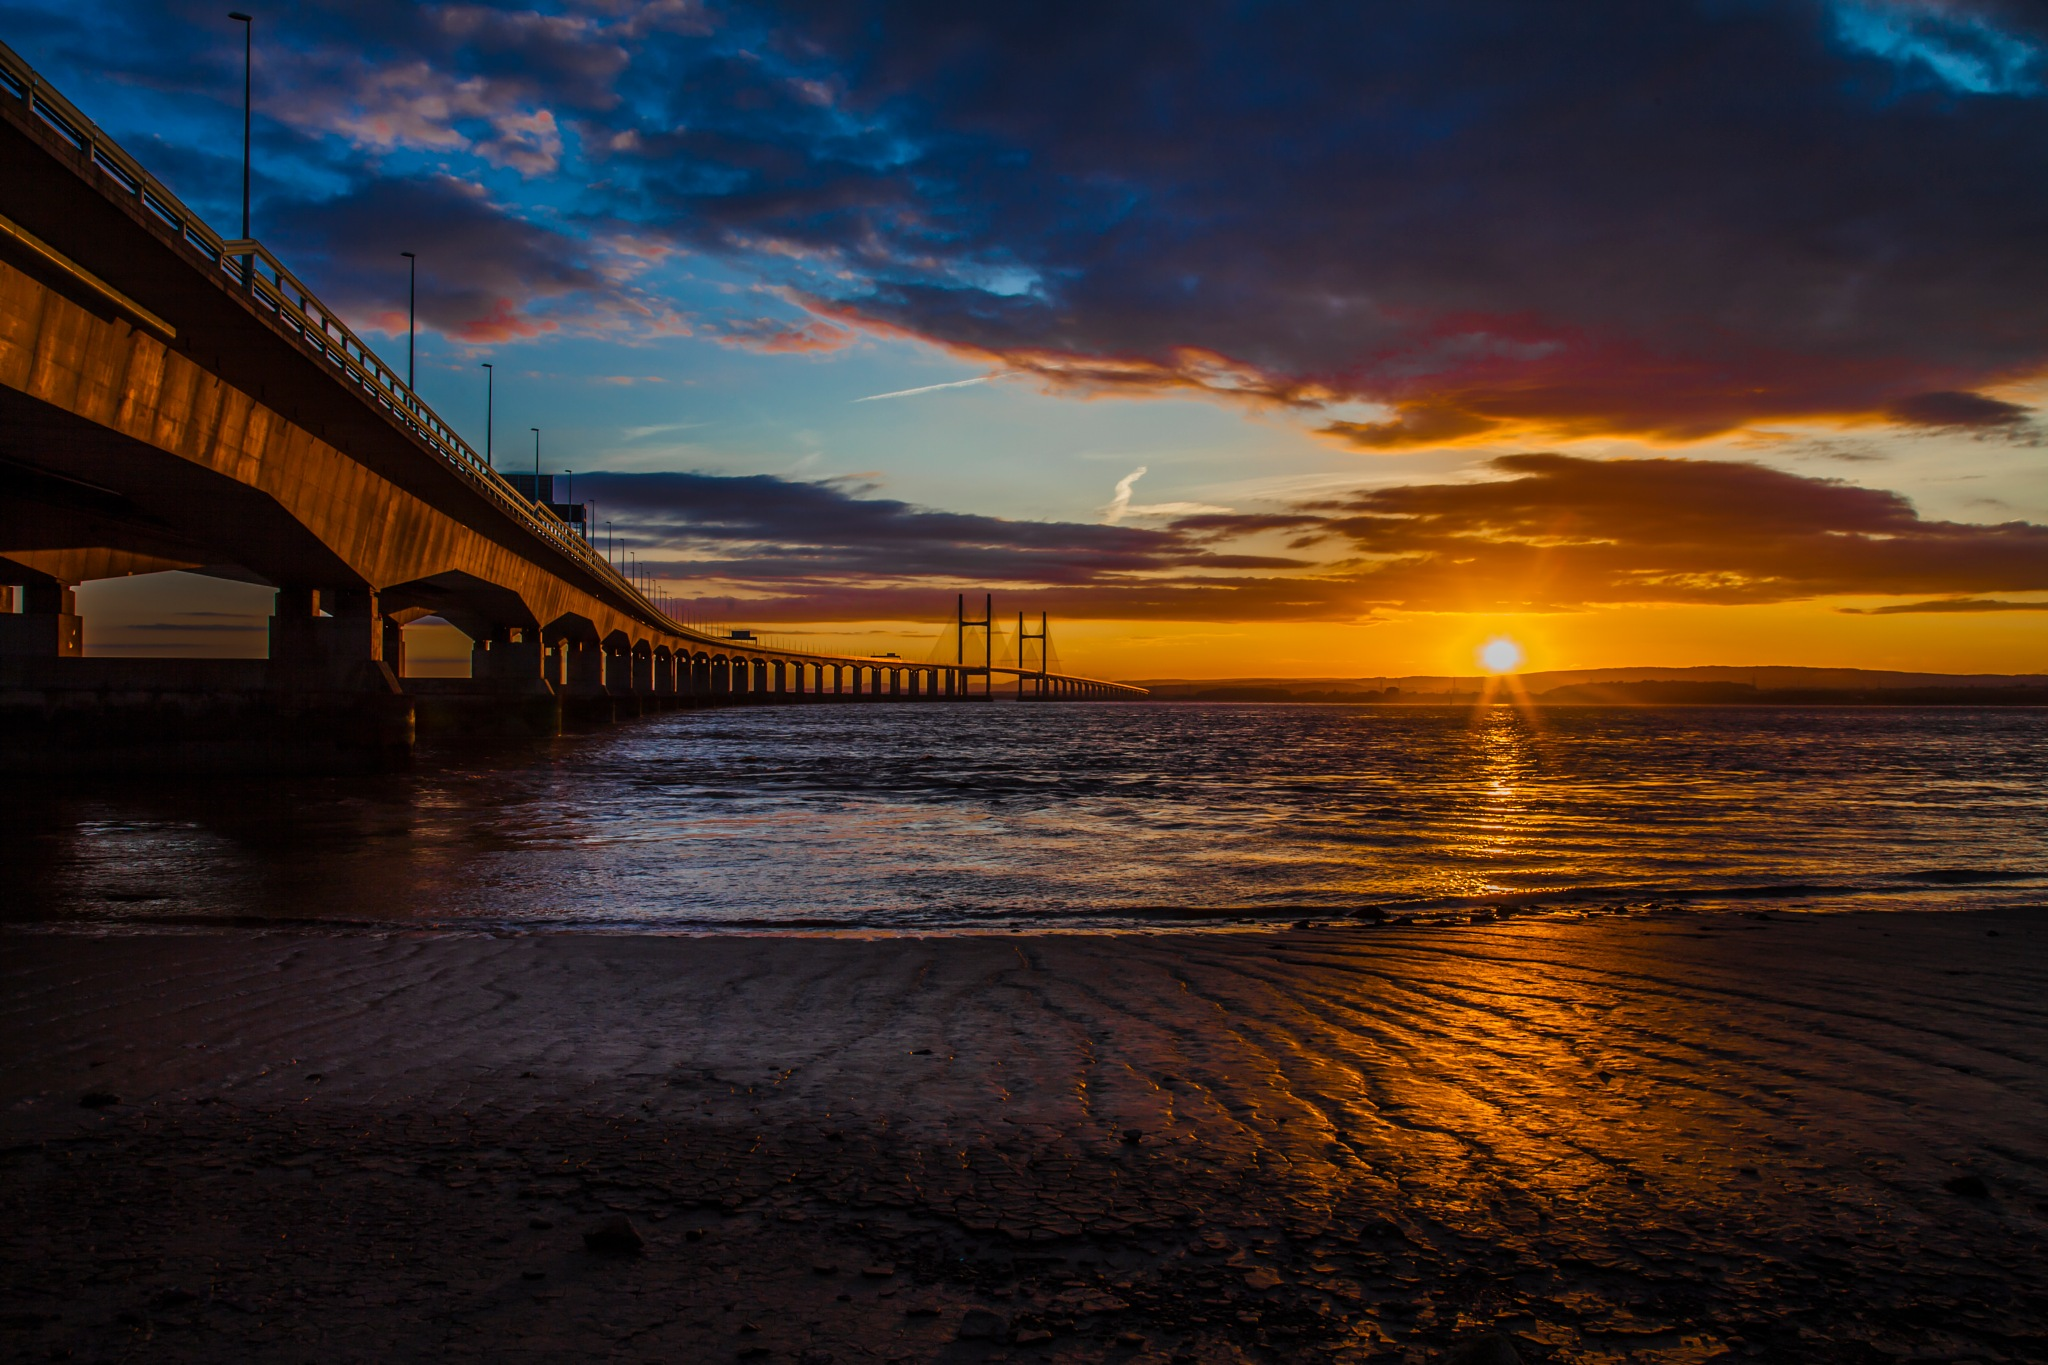 Sunset on the Severn  by Sue Summers